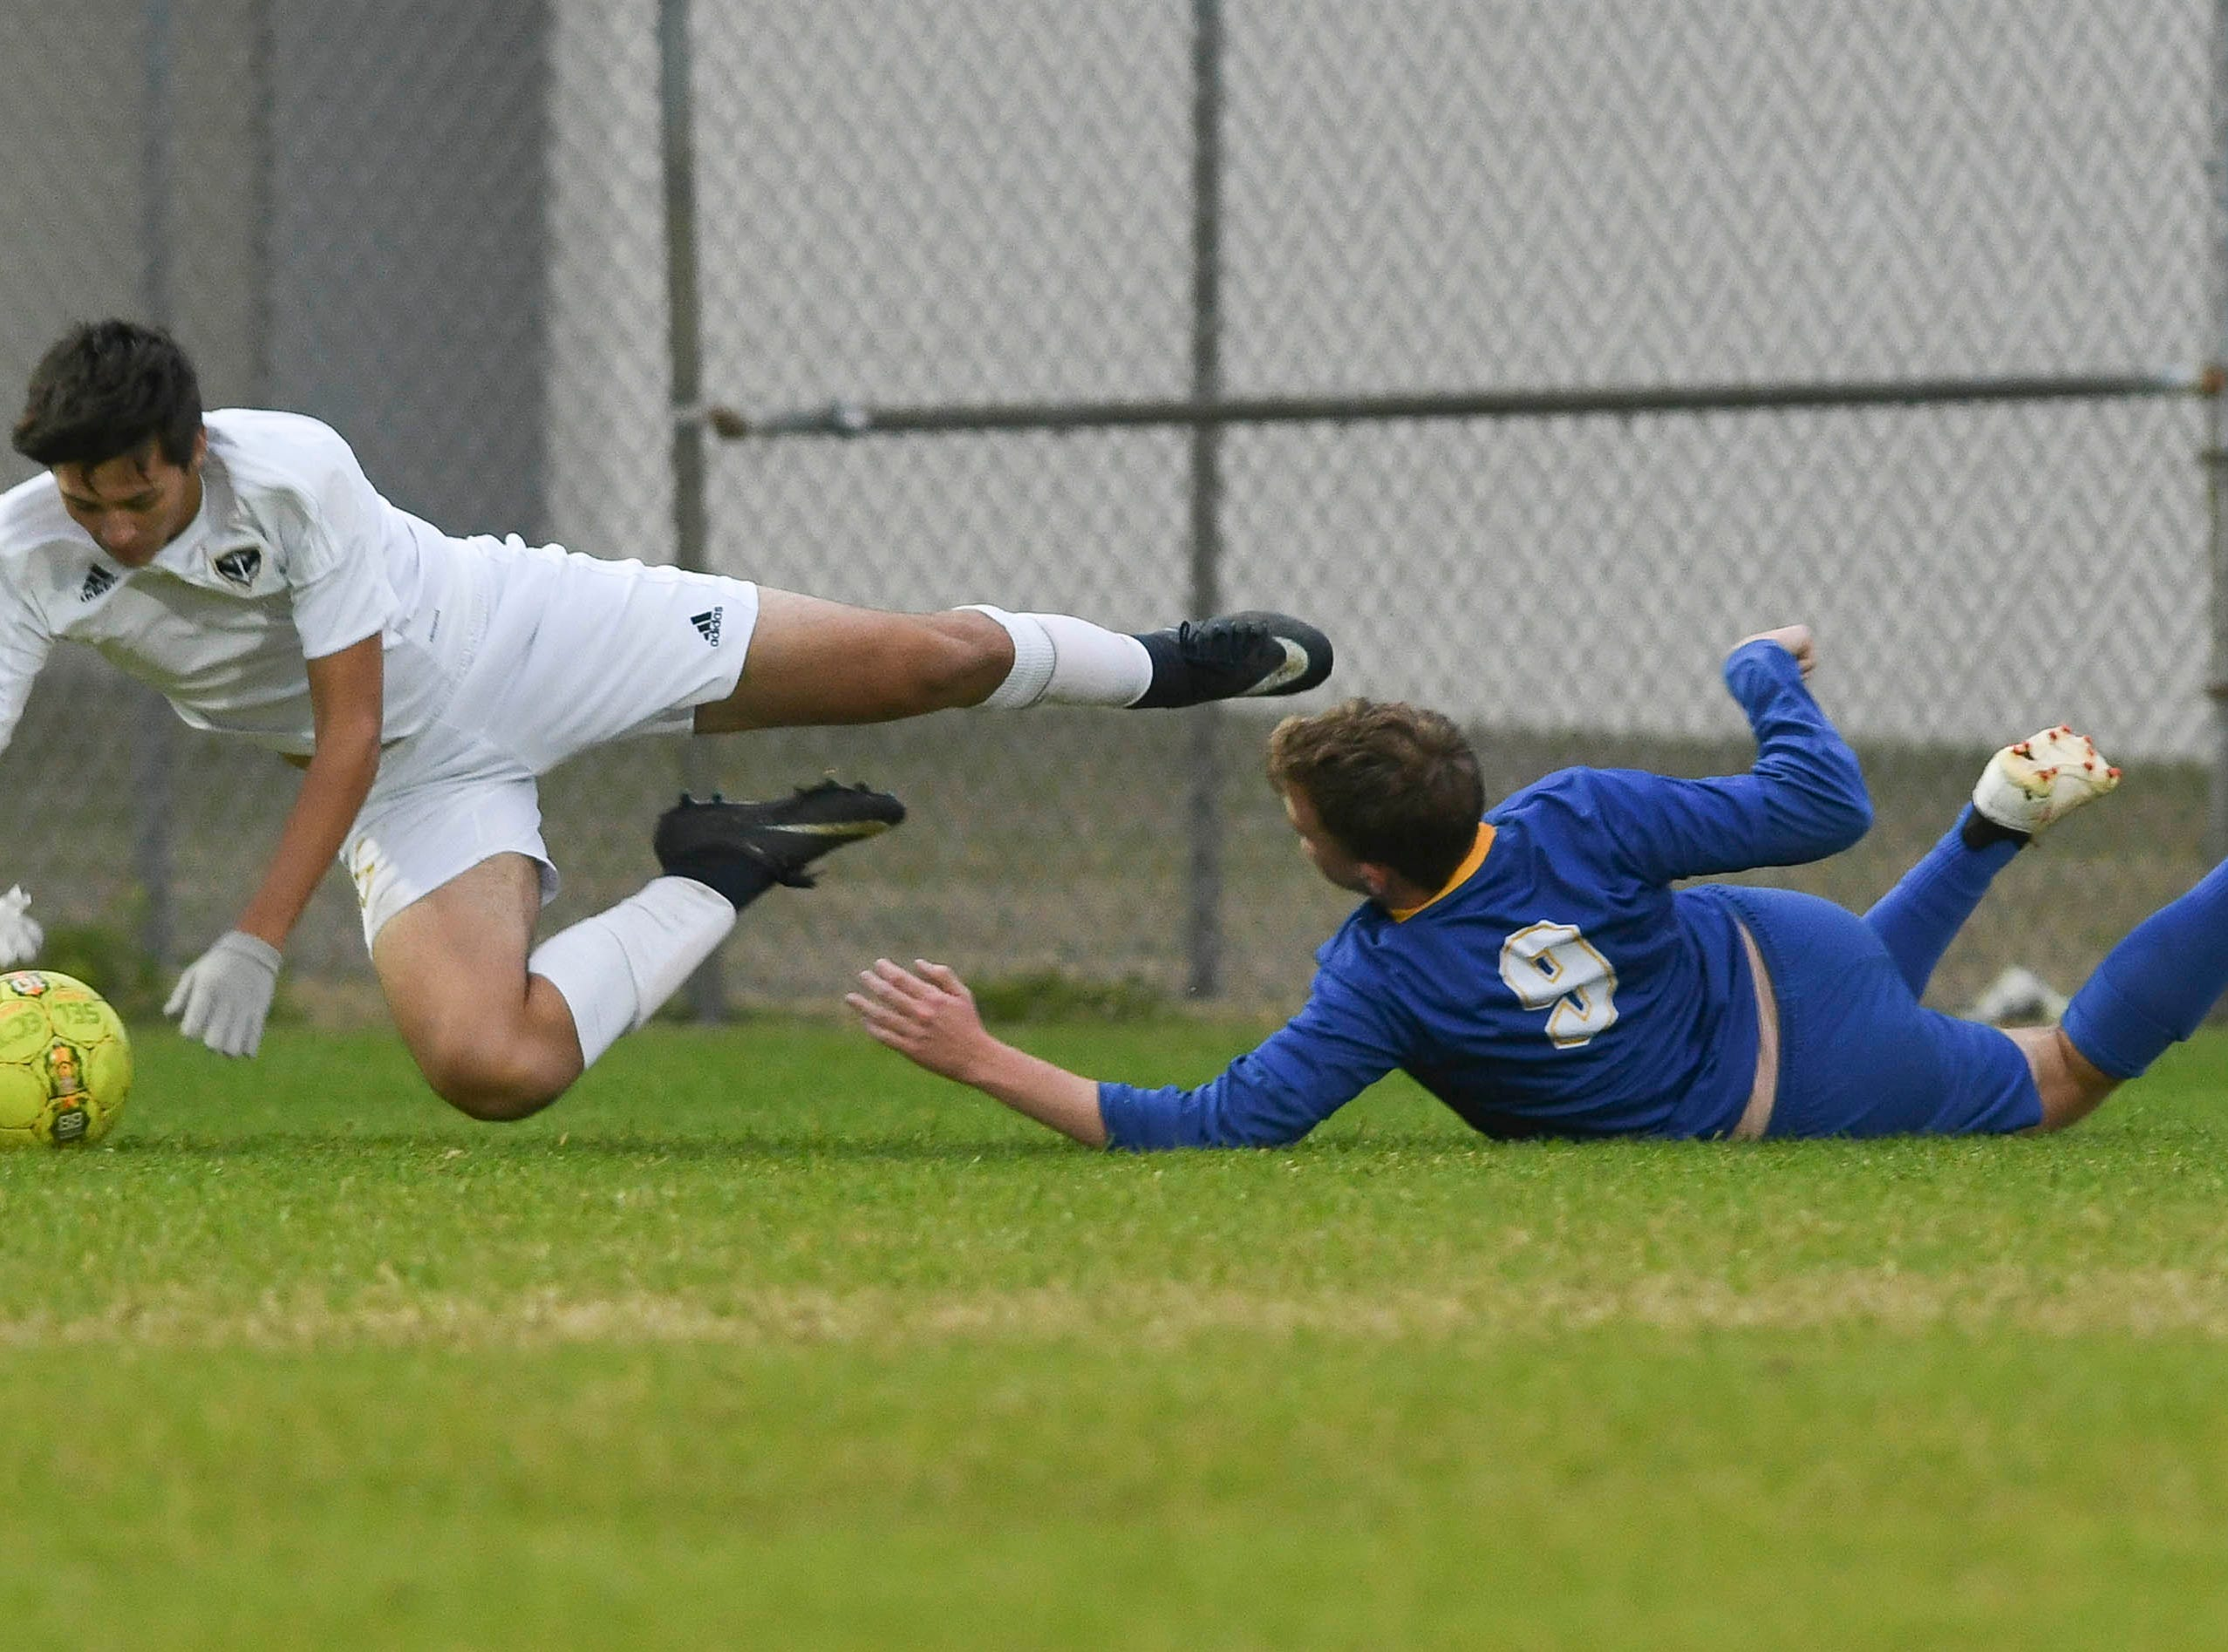 Sean Deavers of Eau Gallie trips over Titusville's David Colbert during Wednesday's District 12, Class 3A semifinal at McLarty Stadium